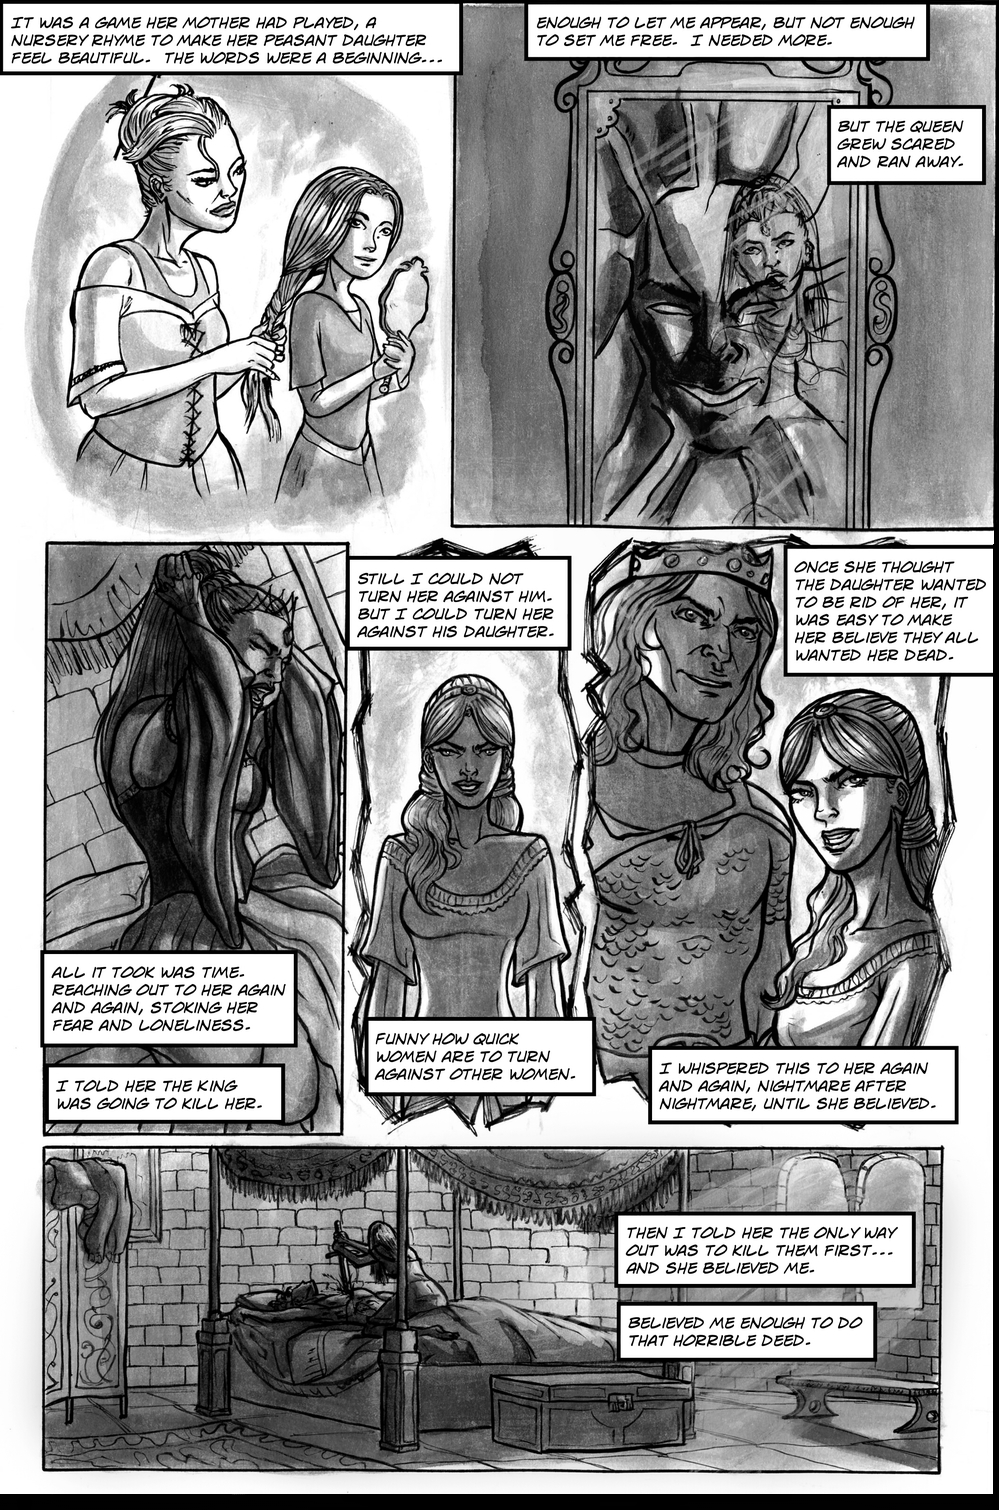 FAIREST page 3 - story 13 in The Book of Lies